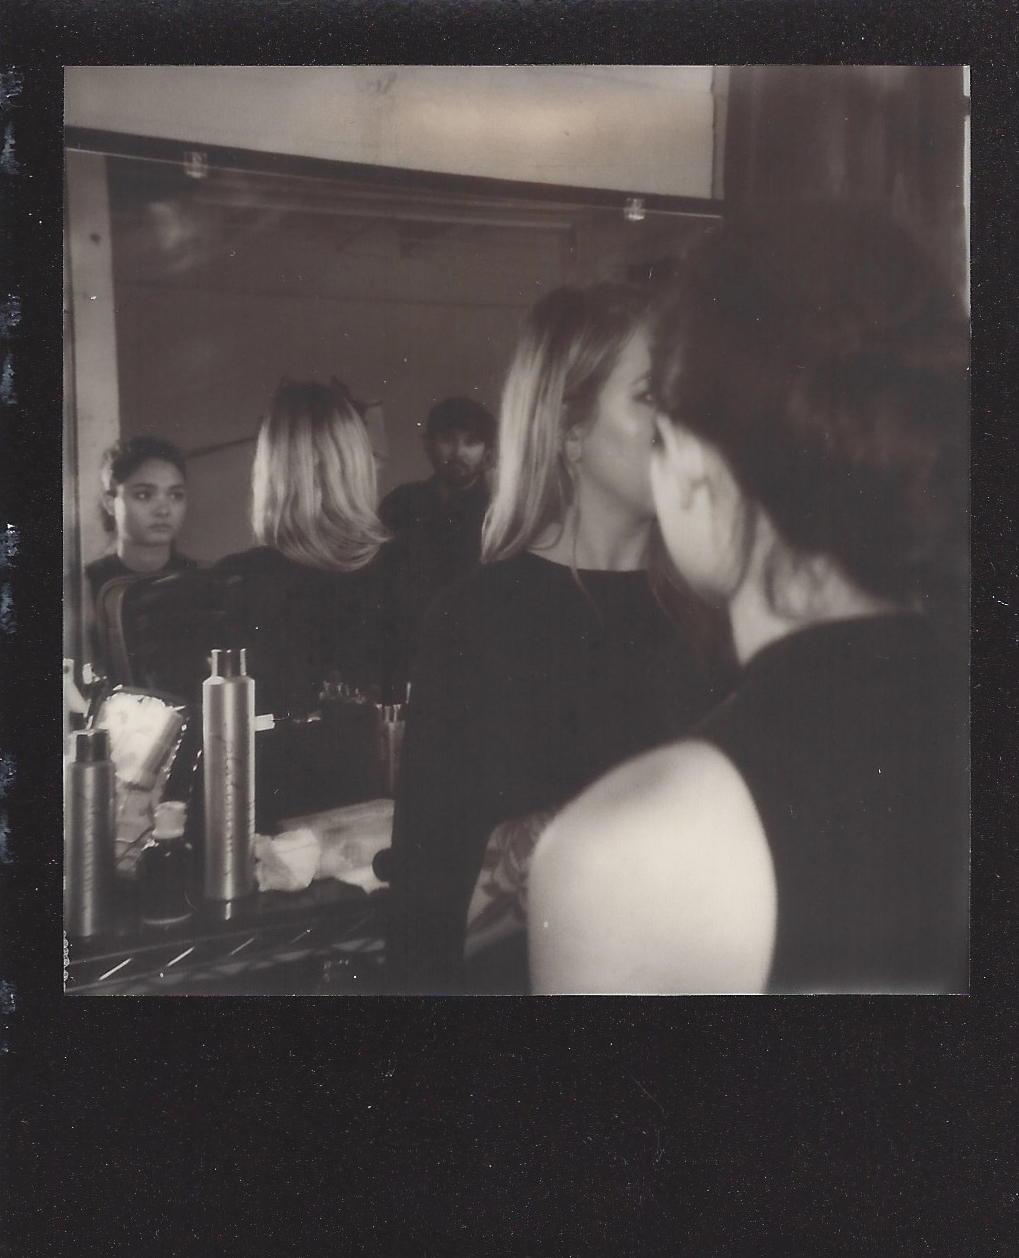 NYC_Fashion_Photographer_Polaroid_Behind_The_Scenes_Photoshoot_Impossible_Film_Camera_Women_Models_Regan_Kemper_MUA